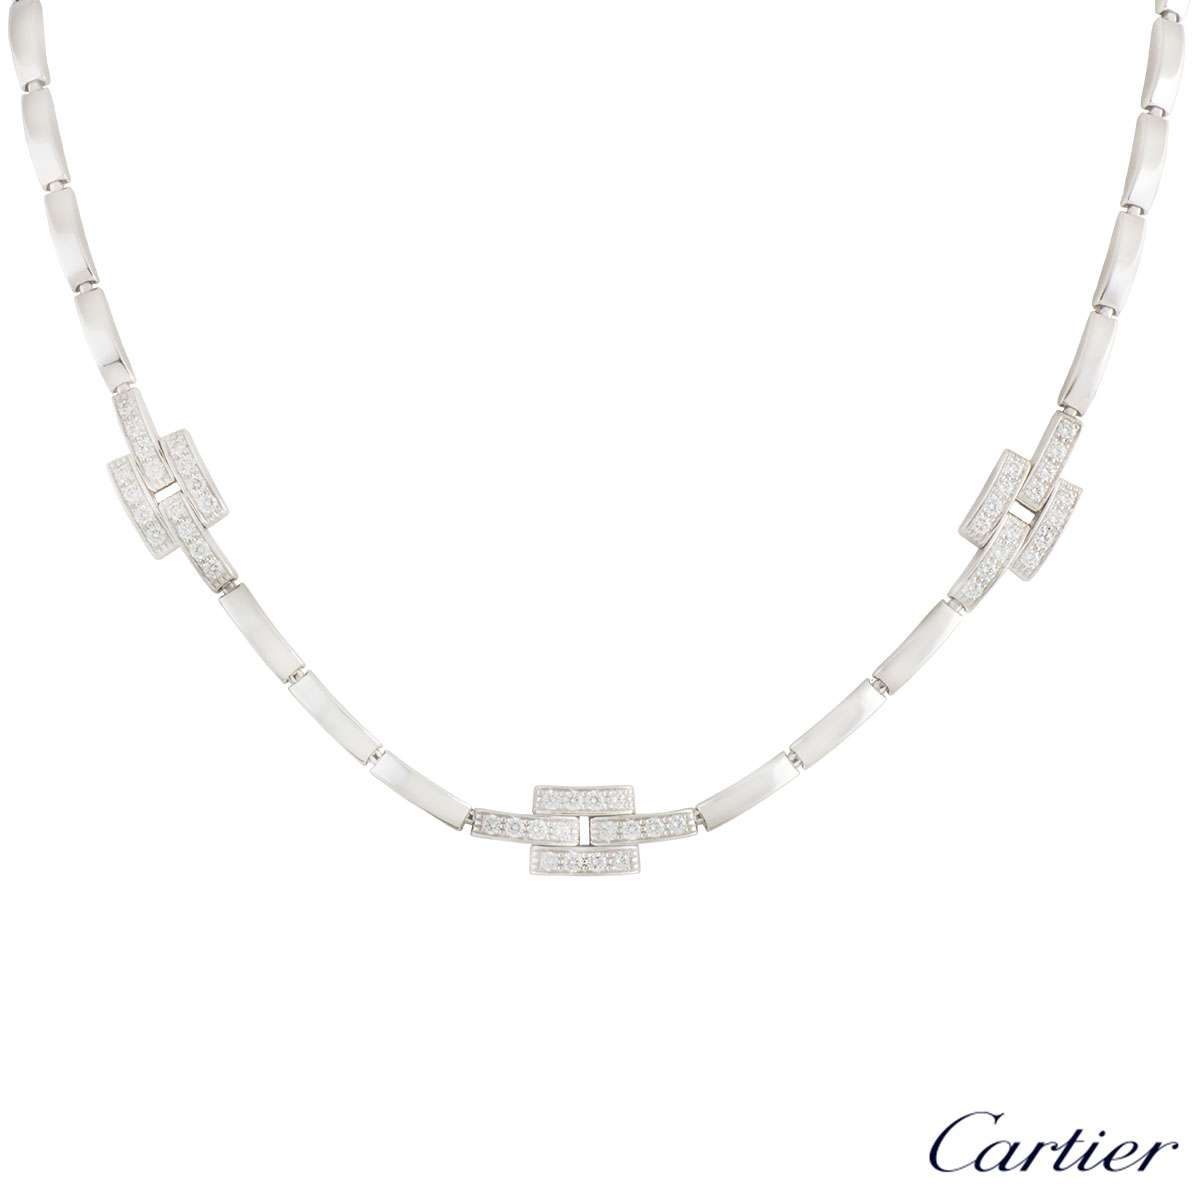 Cartier White Gold Maillon Necklace 0.82ct